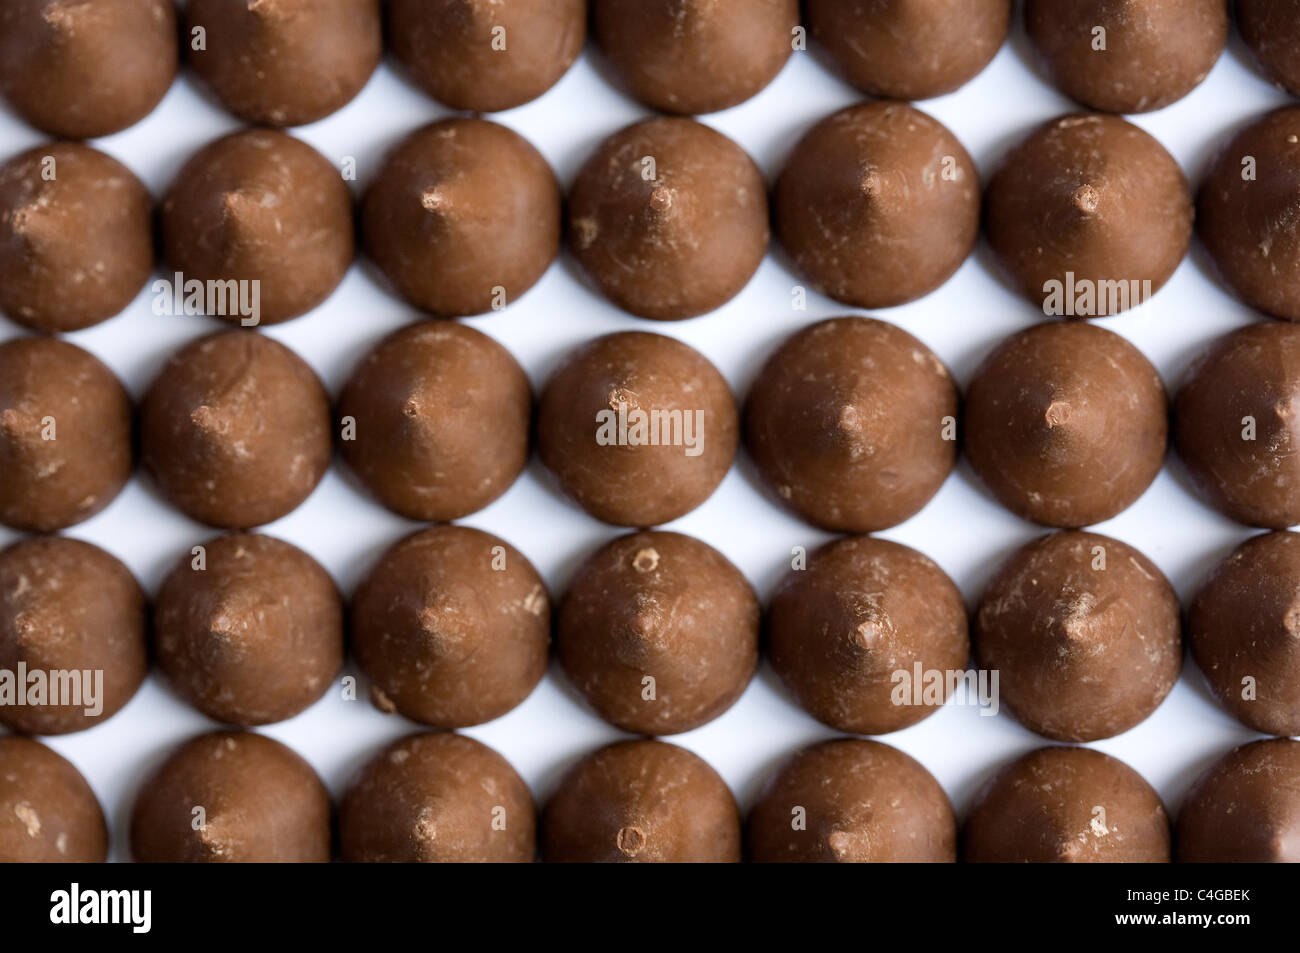 Kisses de Hershey chocolate leche. Imagen De Stock